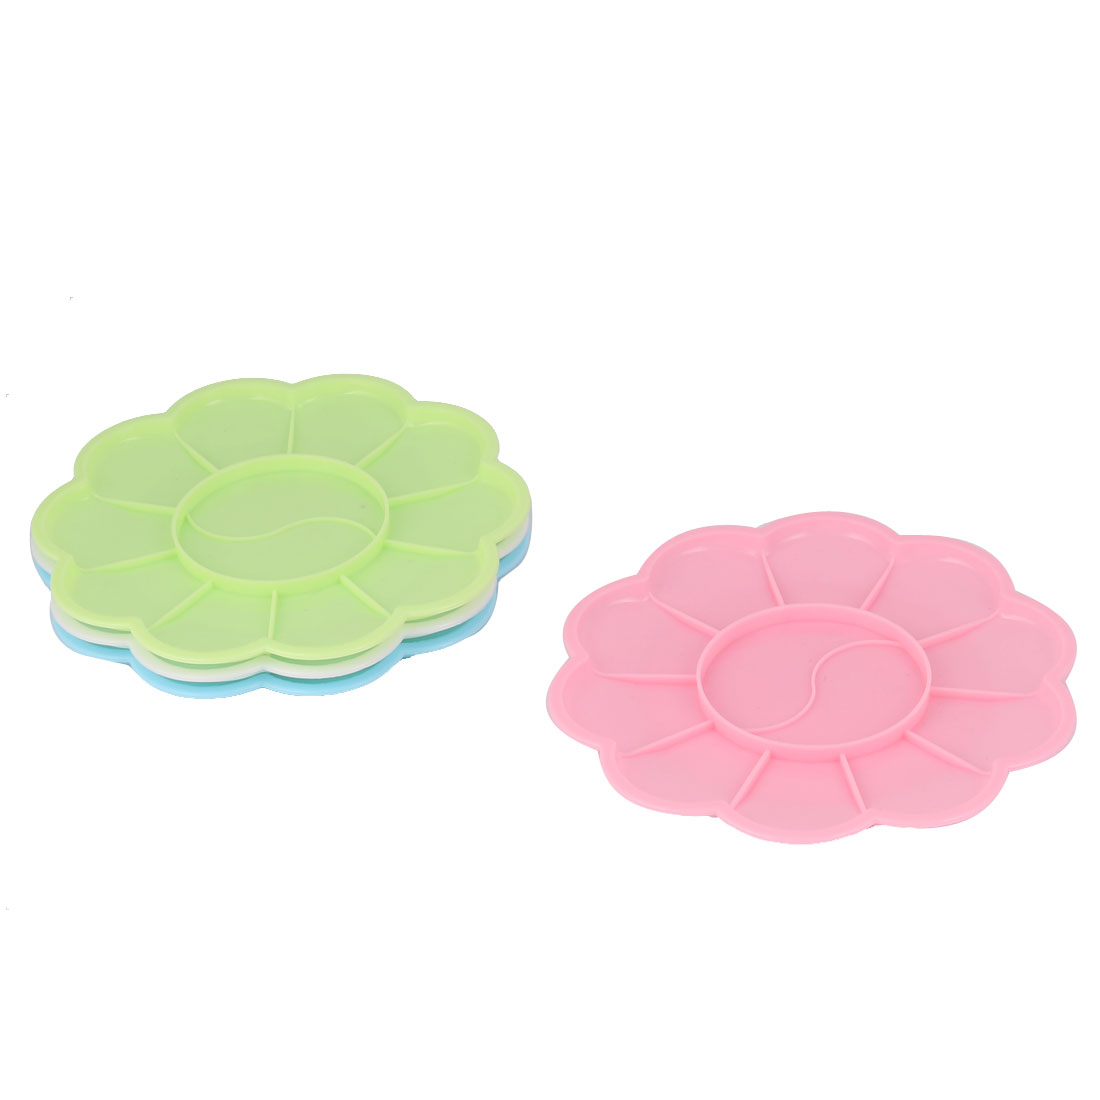 Plastic 12 Compartments Artist Paint Painting Mixing Palette Plate Tray Assorted Color 4 Pcs